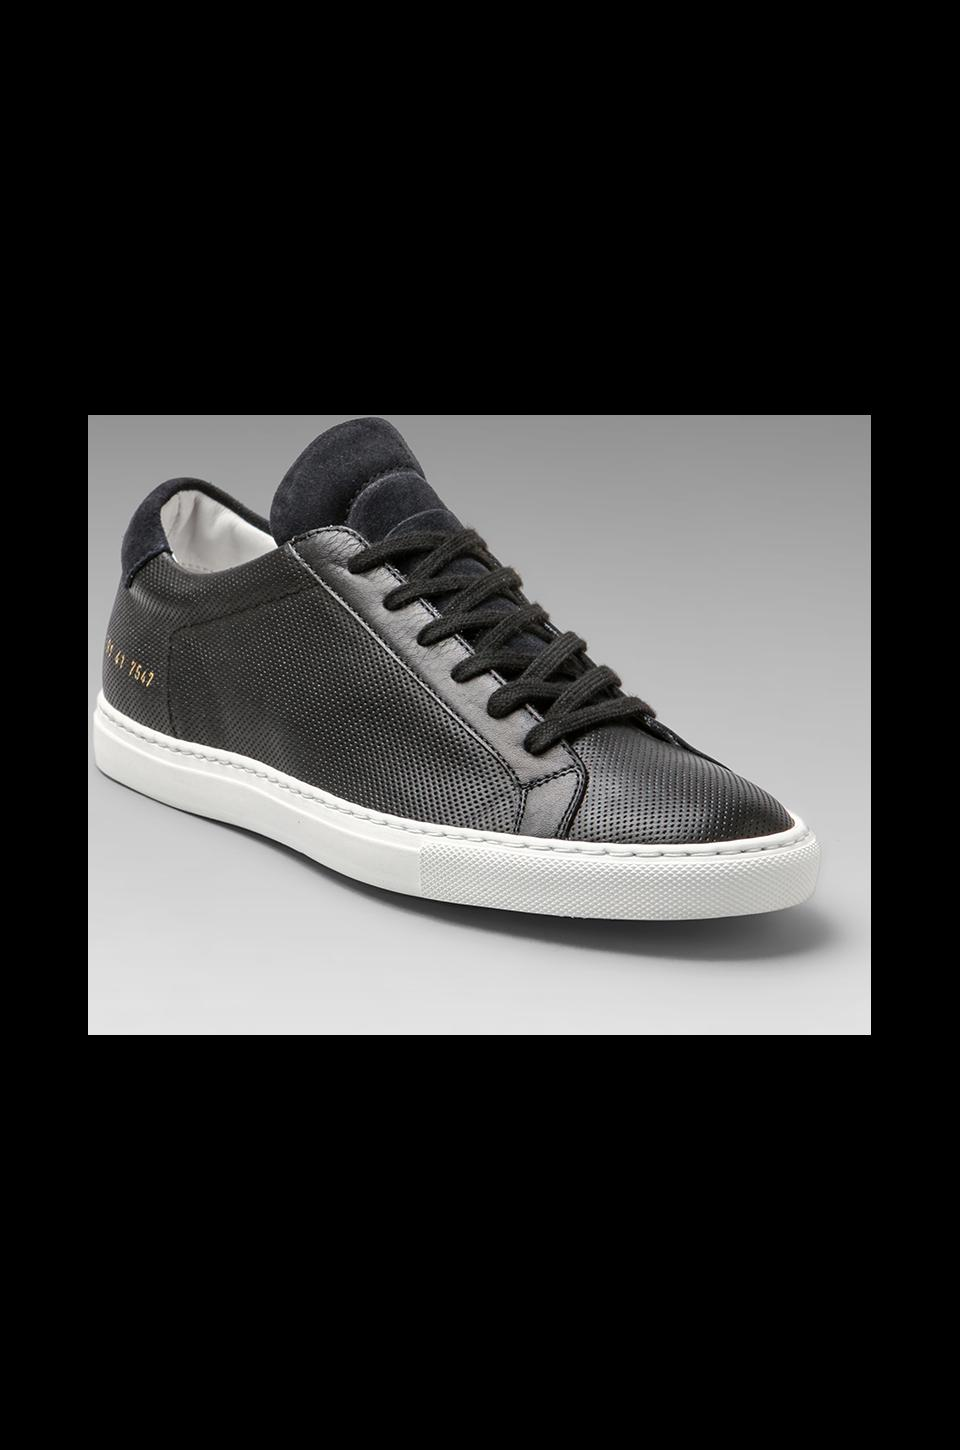 Common Projects Summer Edition Perforated in Black